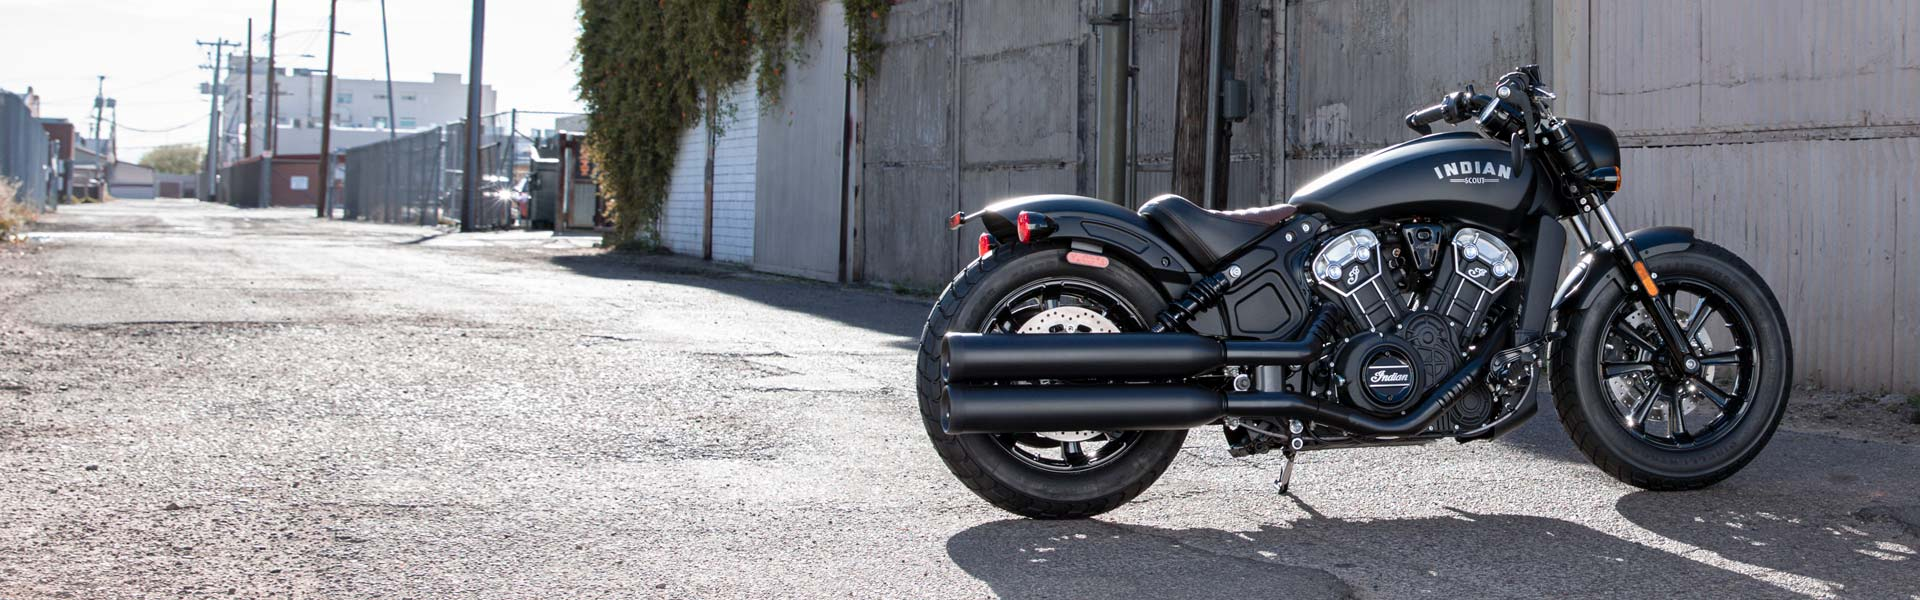 scout bobber freedom motorcycles